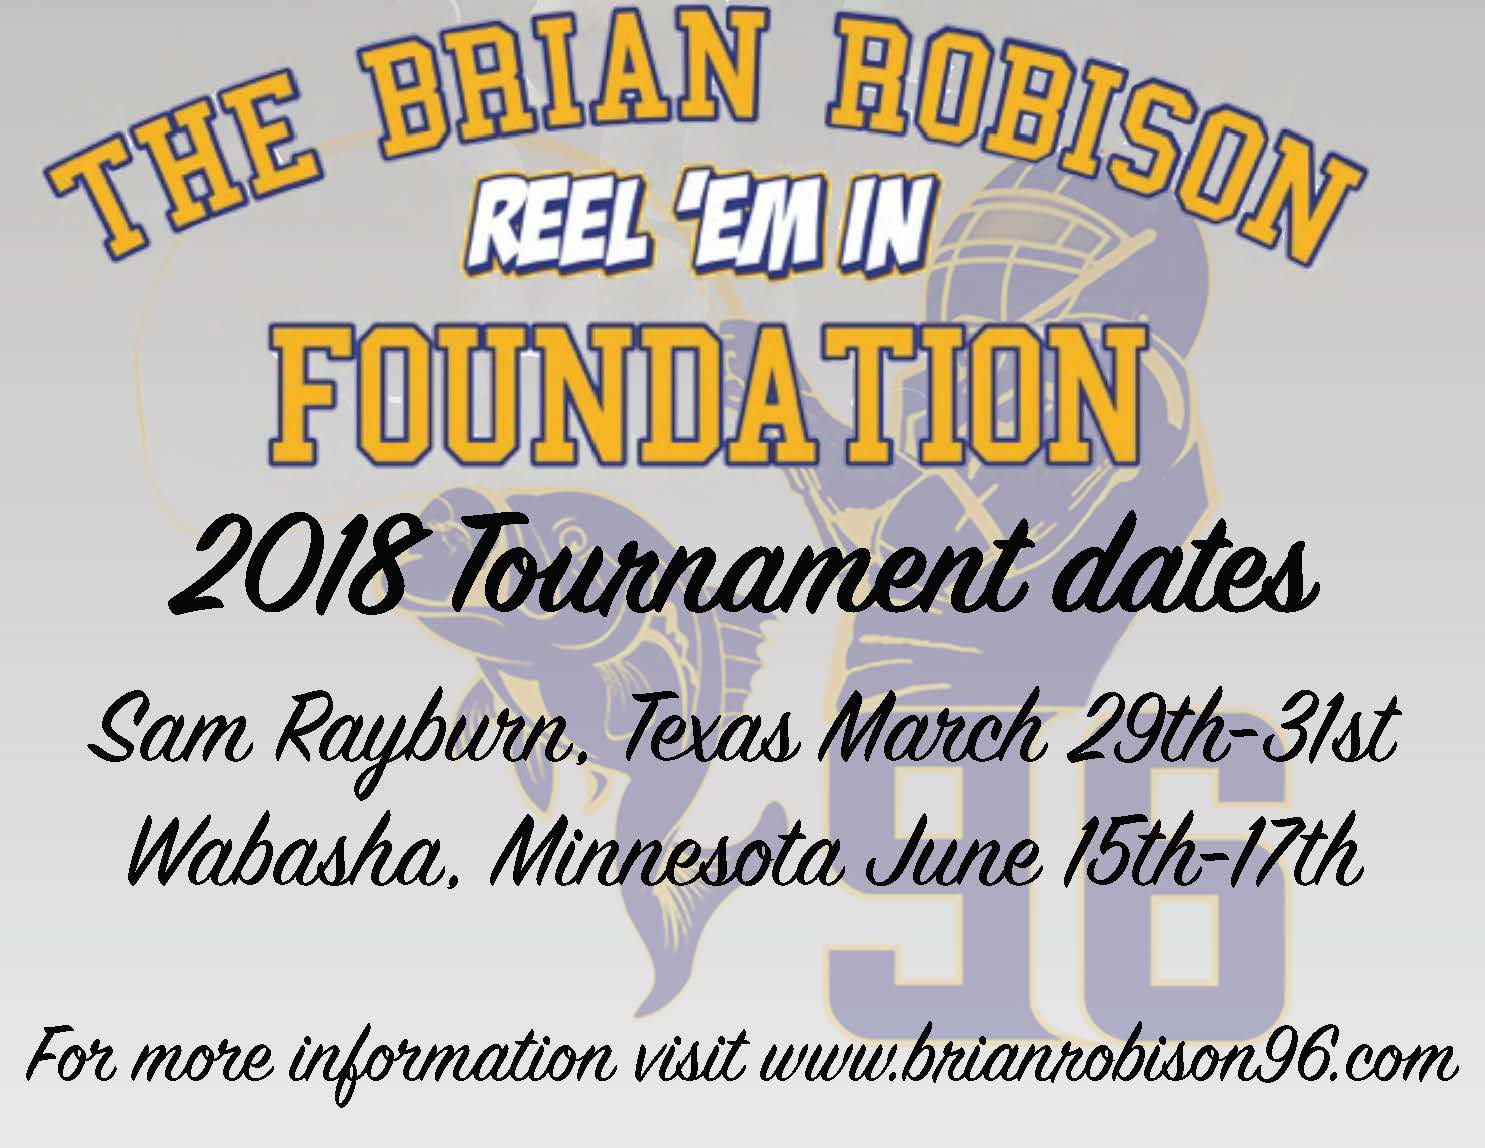 If you would like to donate a item or sponsor the 2018 Reel 'Em In Foundation tournaments contacts us at  brianrobison96@aol.com